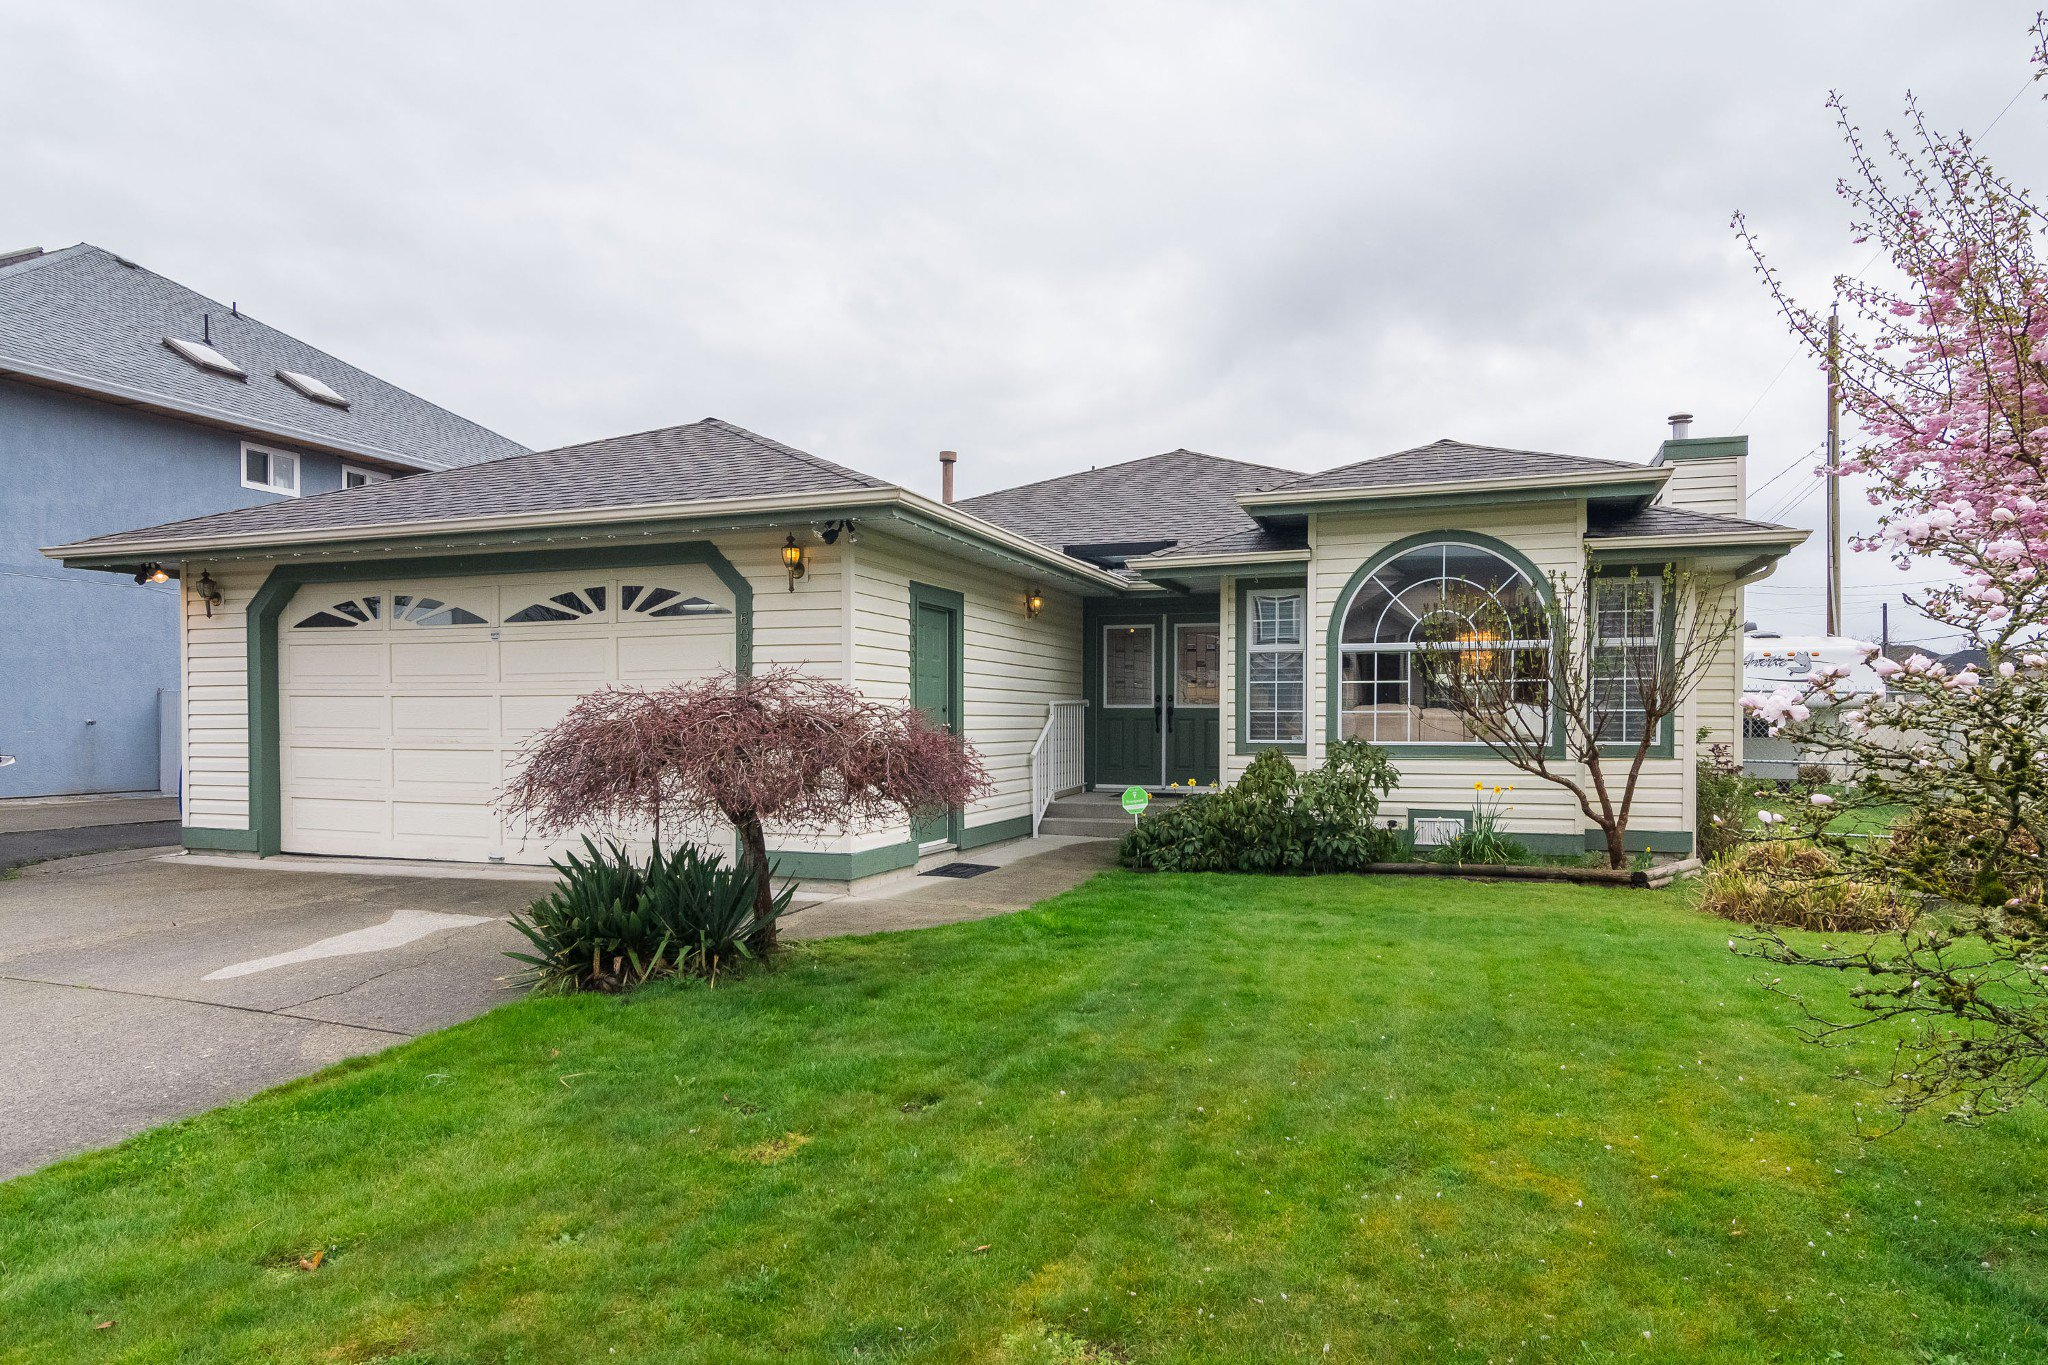 Photo 34: Photos: 6004 170 Street in Surrey: Cloverdale BC House for sale (Cloverdale)  : MLS®# R2355466